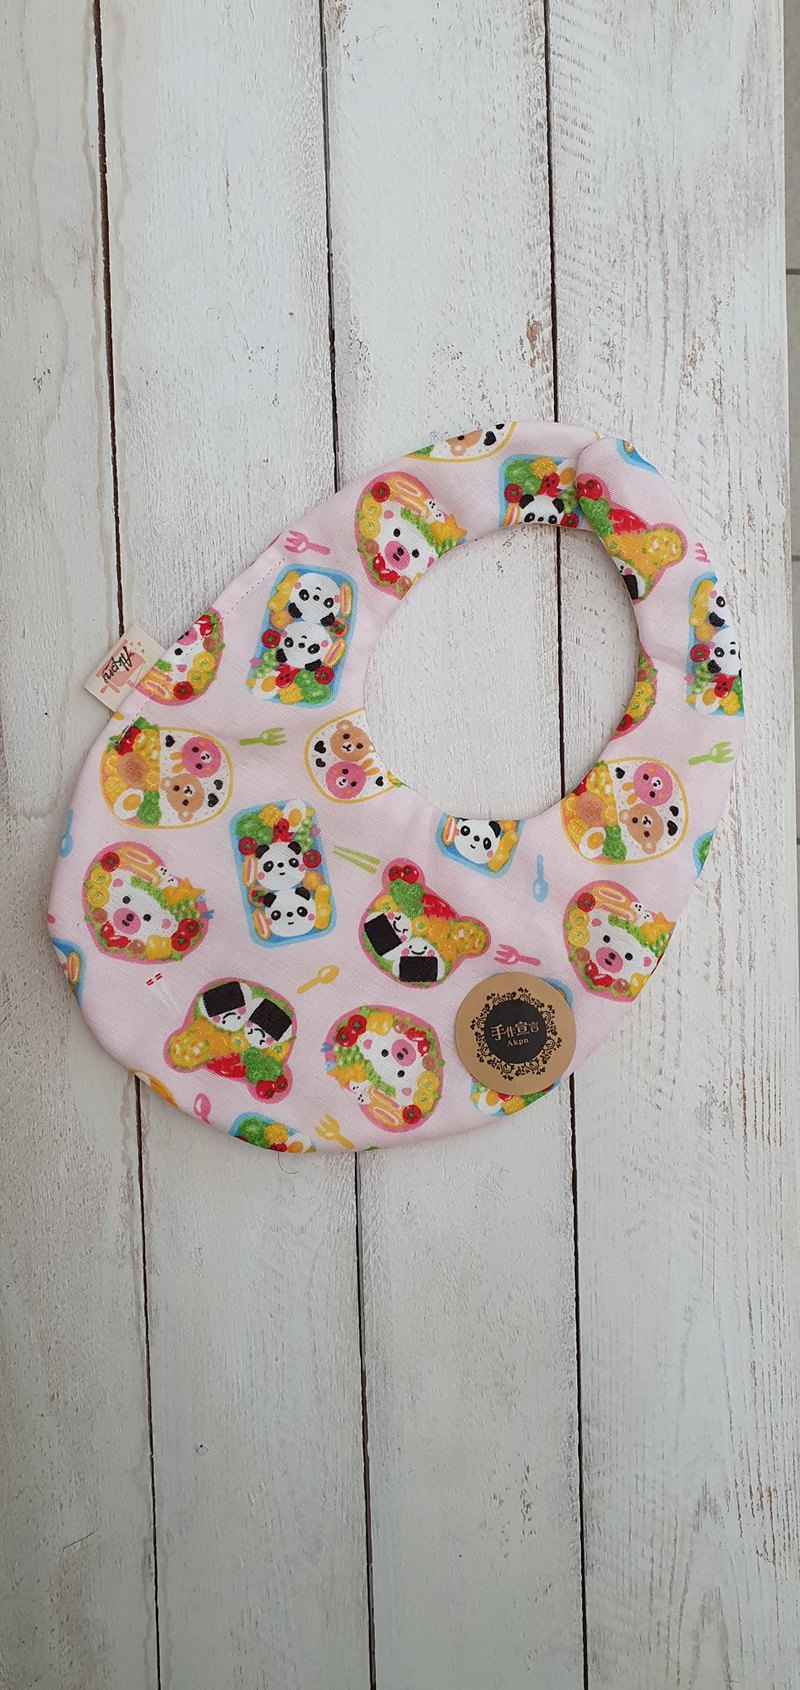 Picnic Party-Eight-layer yarn 100% cotton double-sided egg-shaped bib.